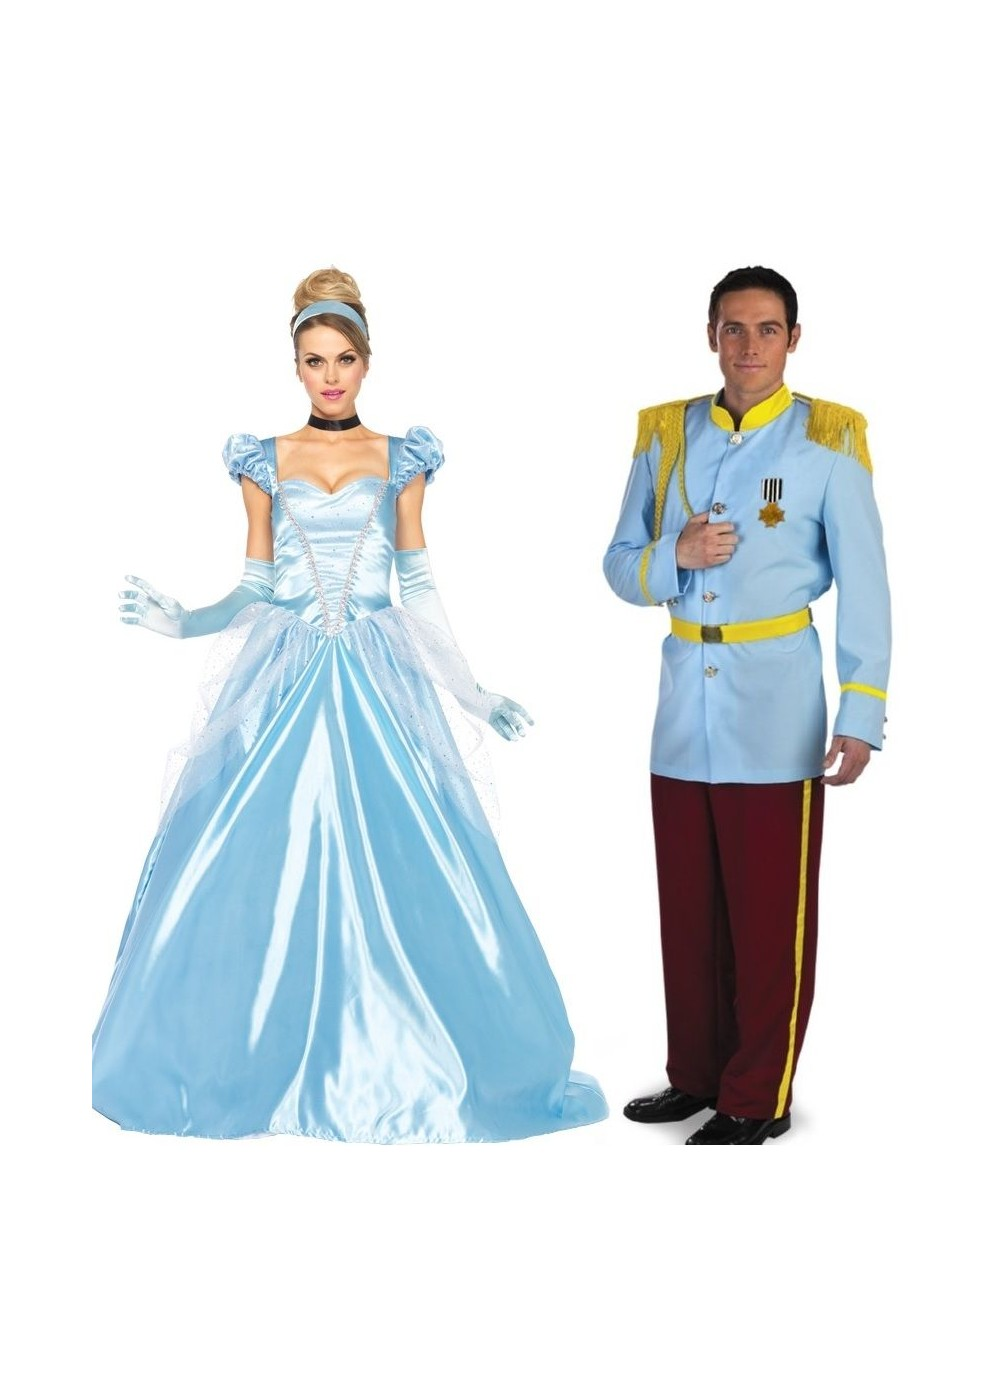 Cinderella And Prince Charming Couple Costume Kit Couples Costume